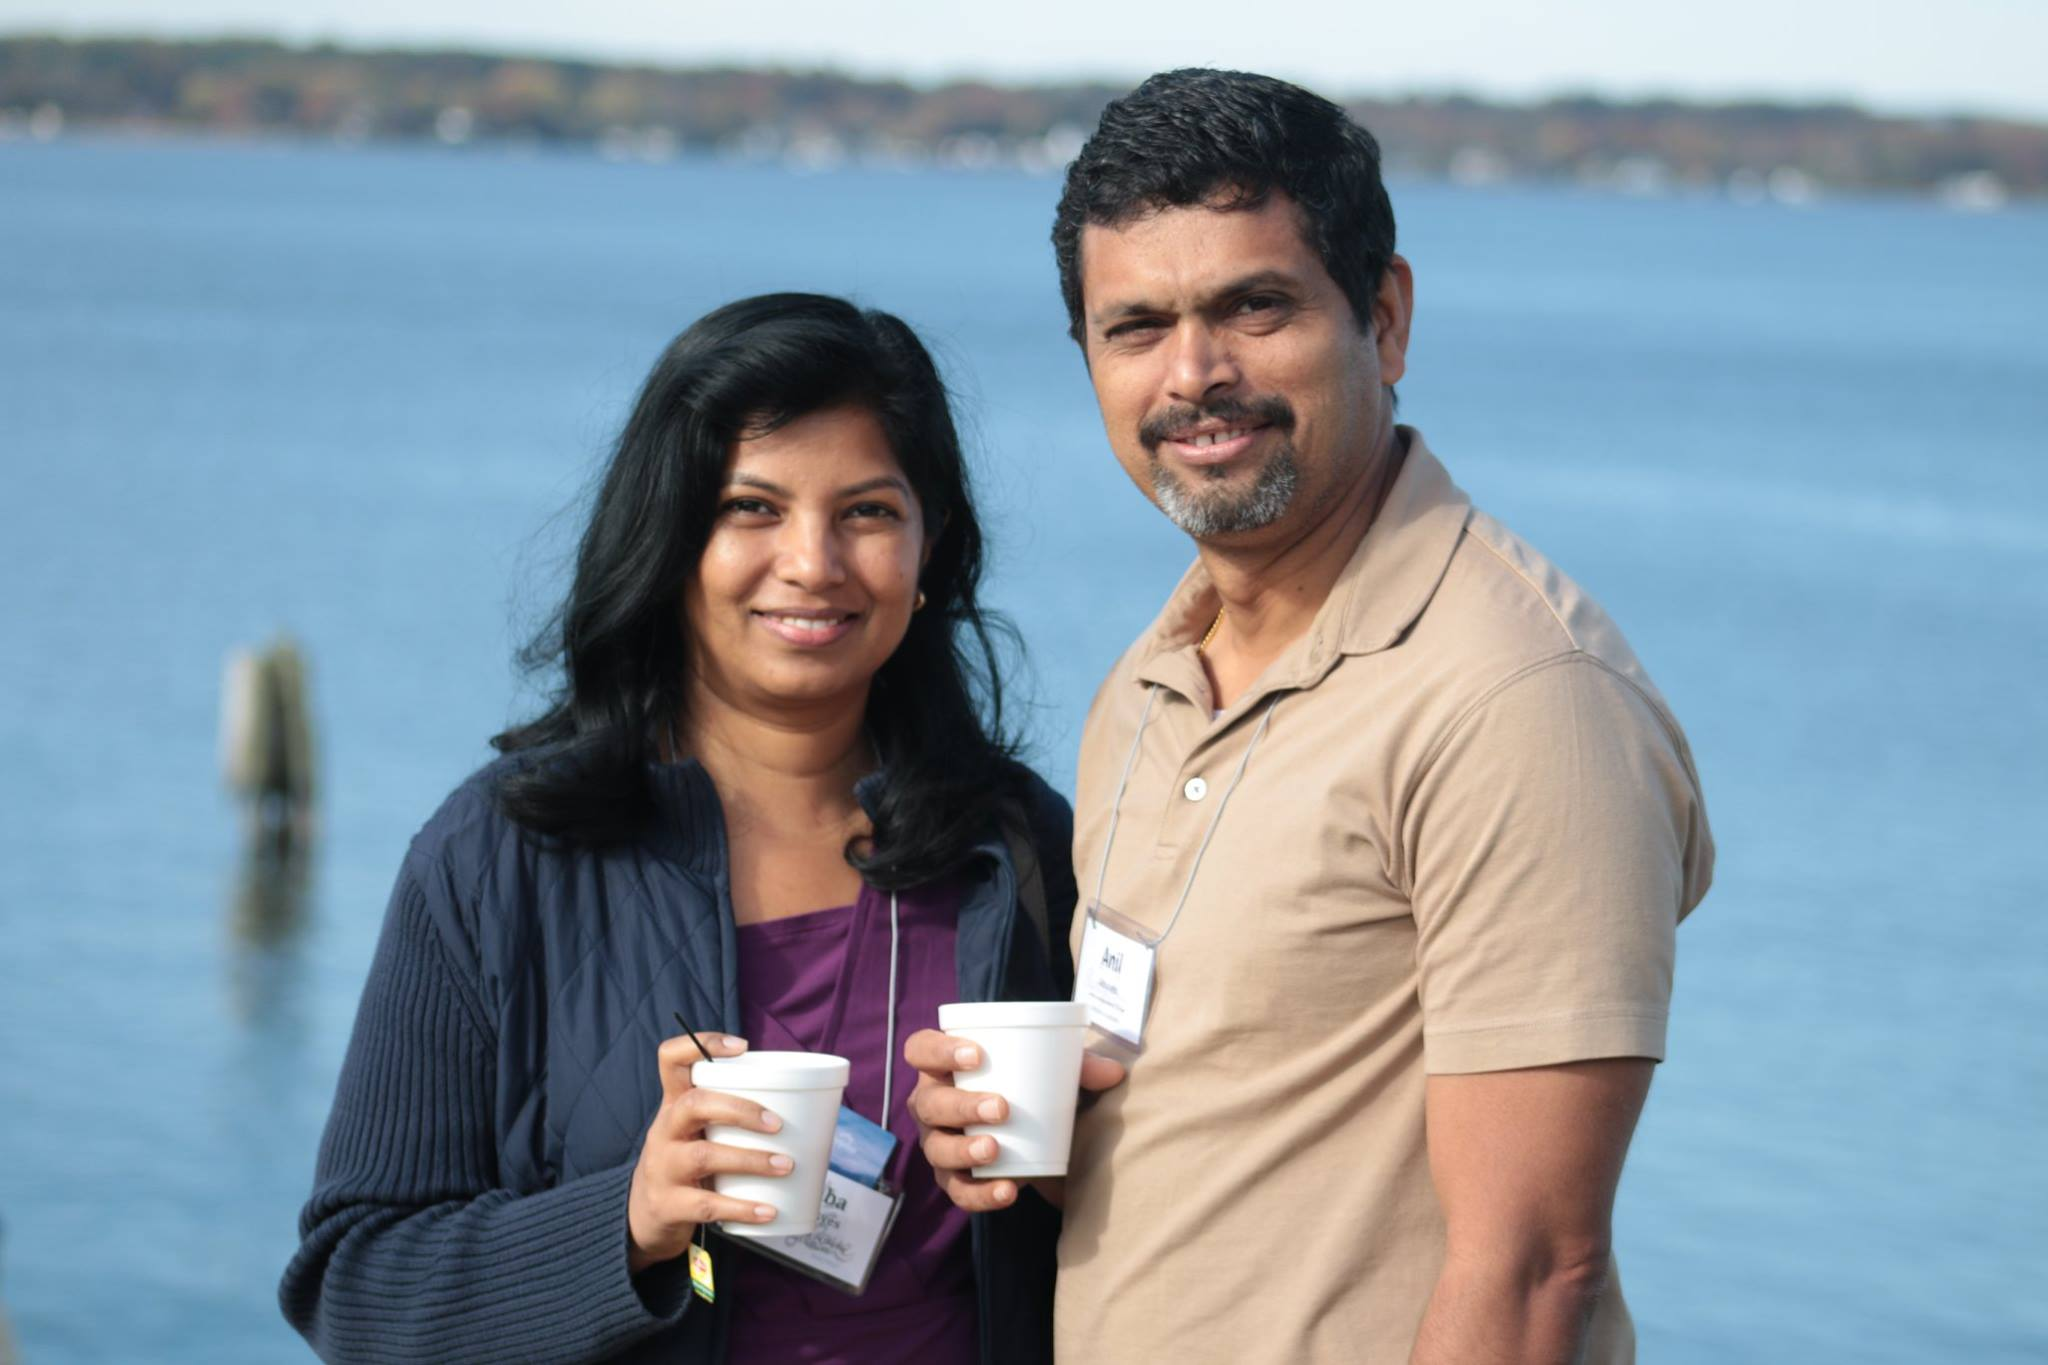 Sandy cove ministries introduction for Great weekend getaways for couples